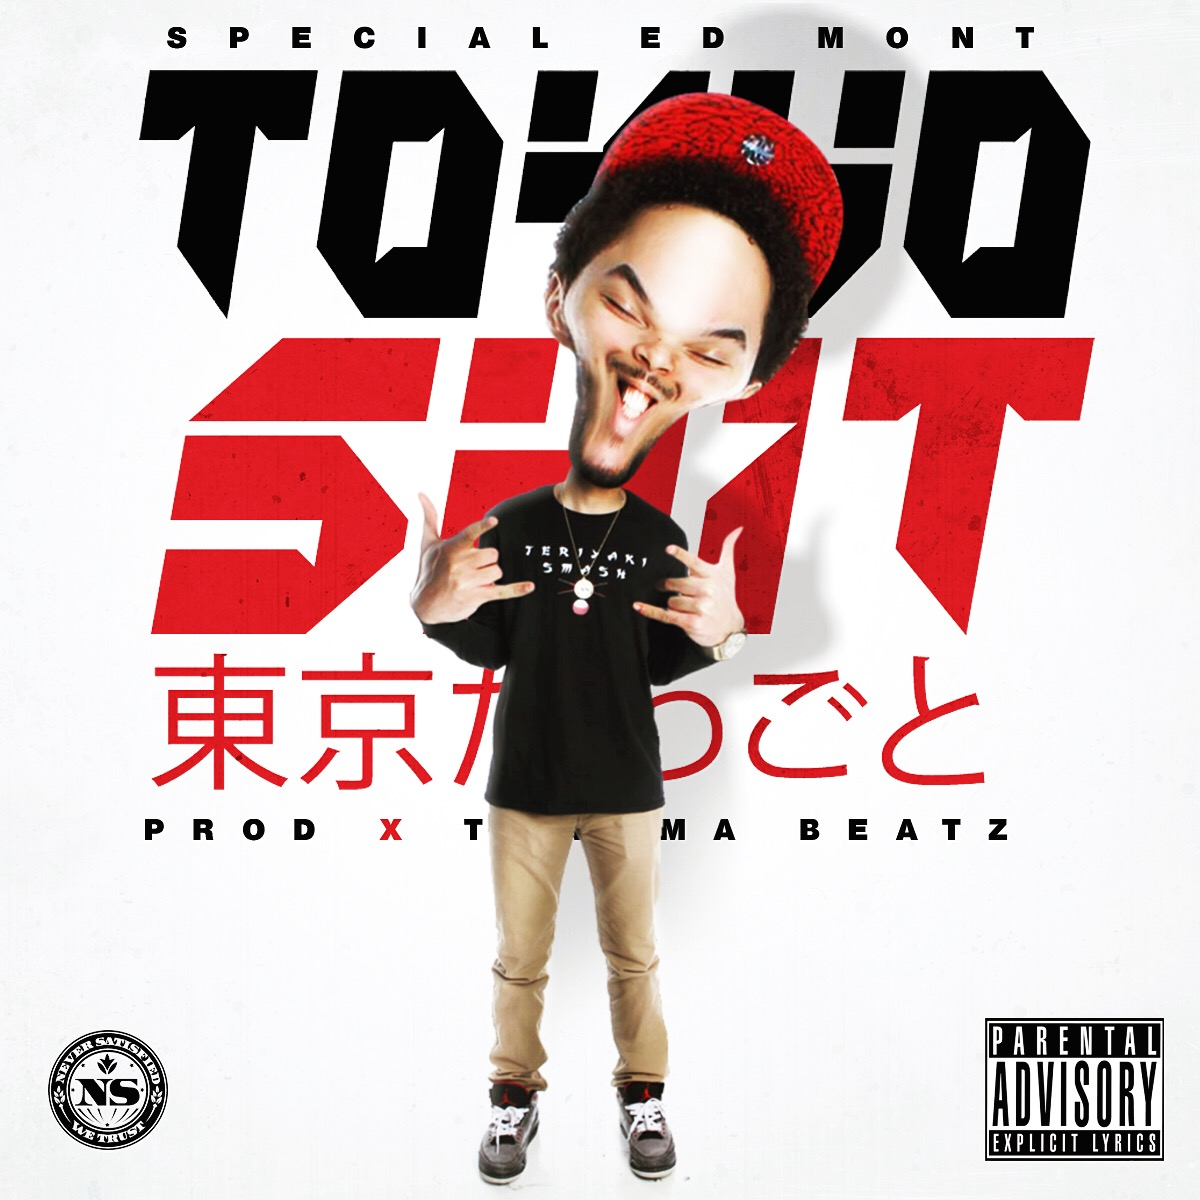 Special Ed Mont x Tokyo